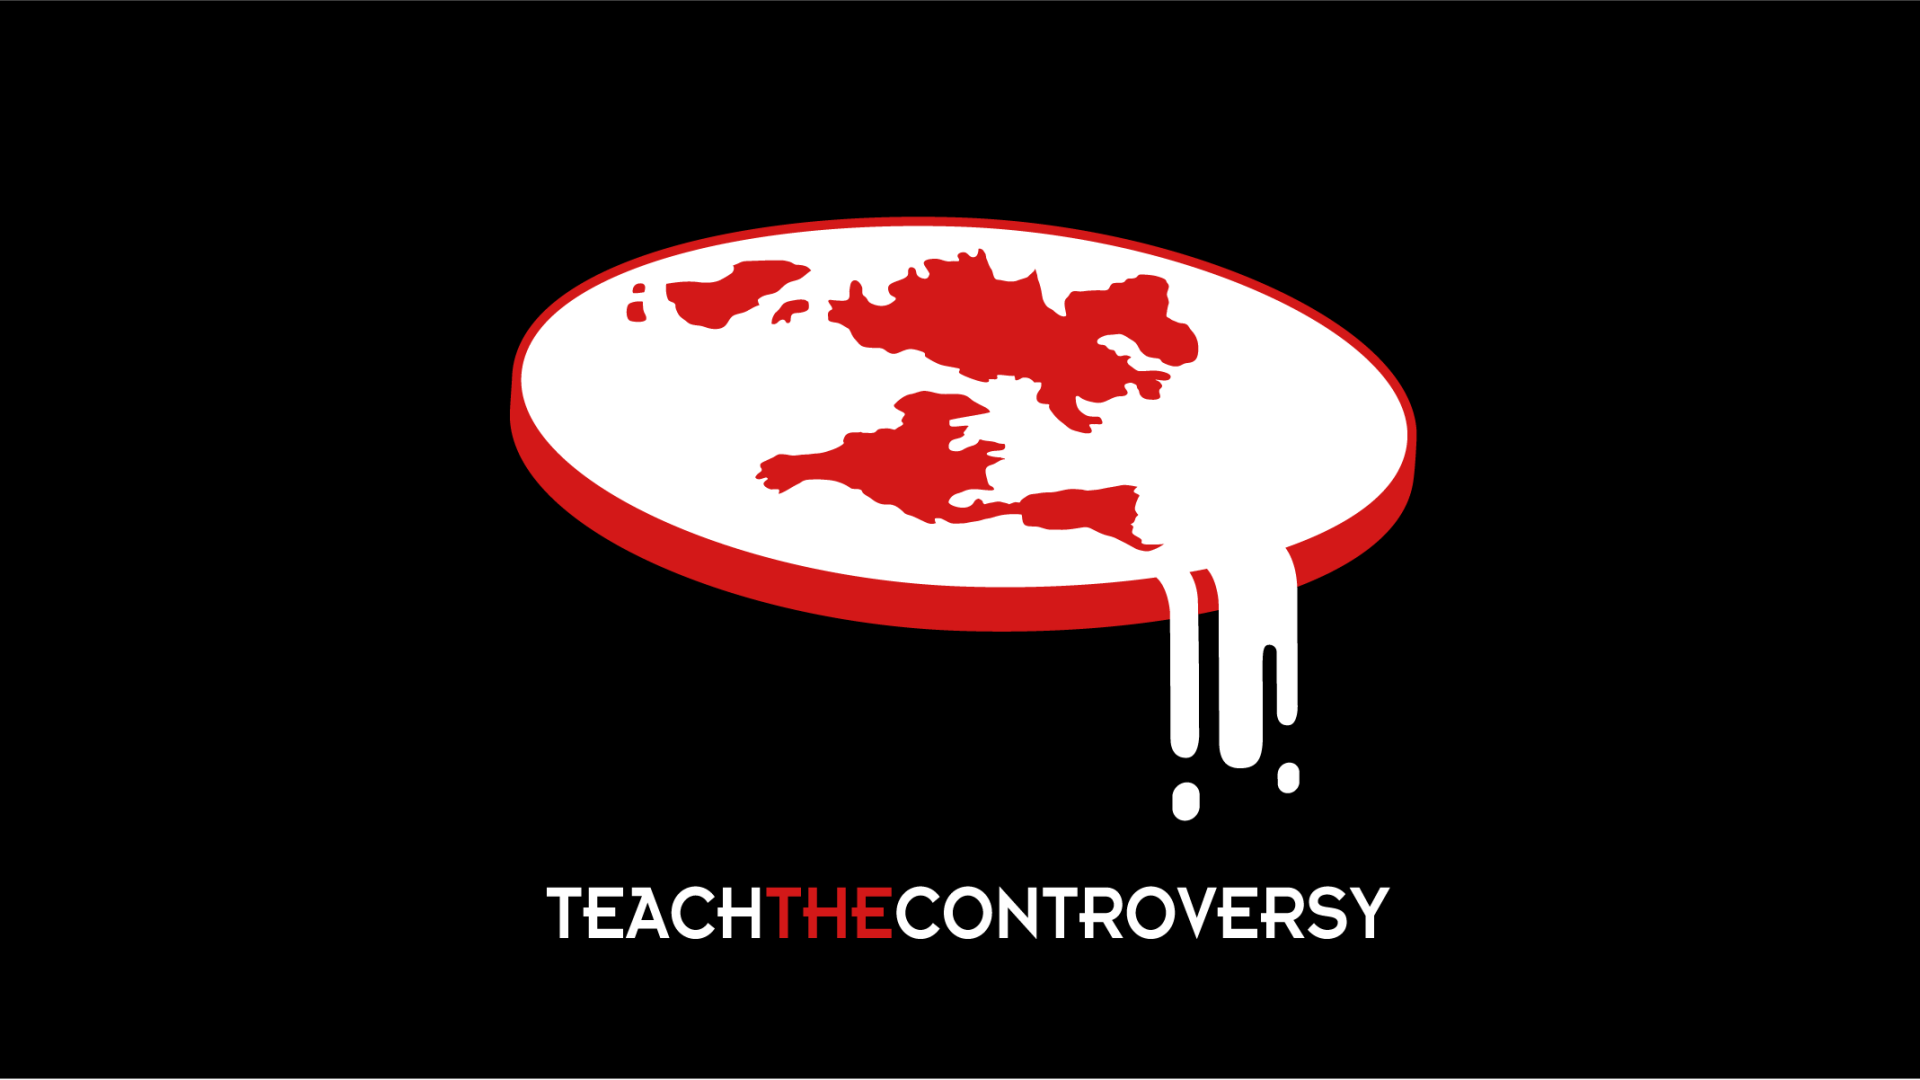 Teach The Controversy Wallpapers